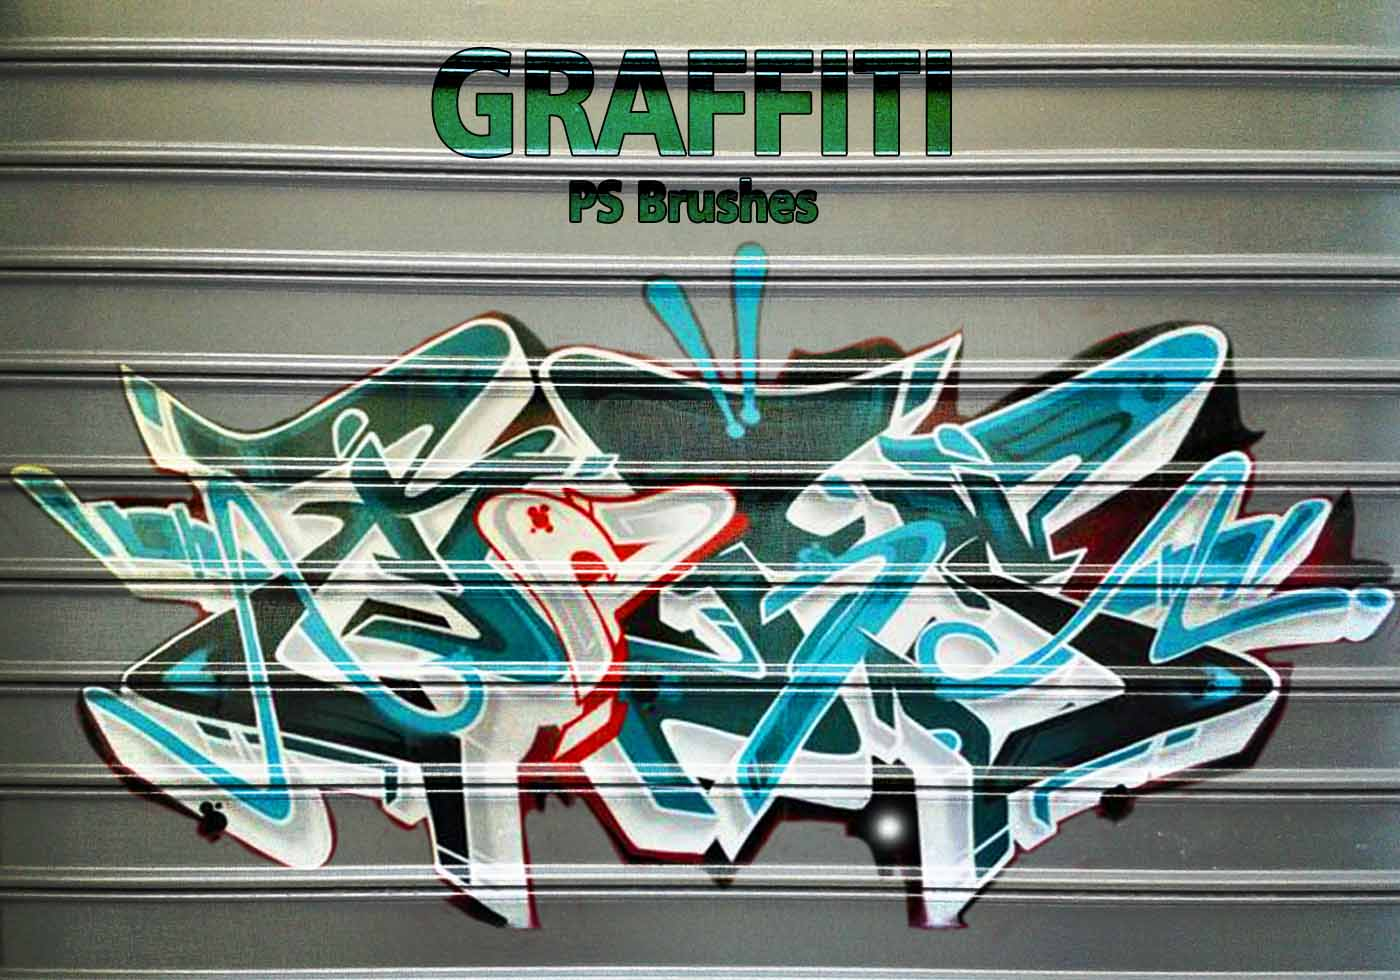 Download 20 Graffiti PS Brushes abr. Vol.11 - Free Photoshop ...